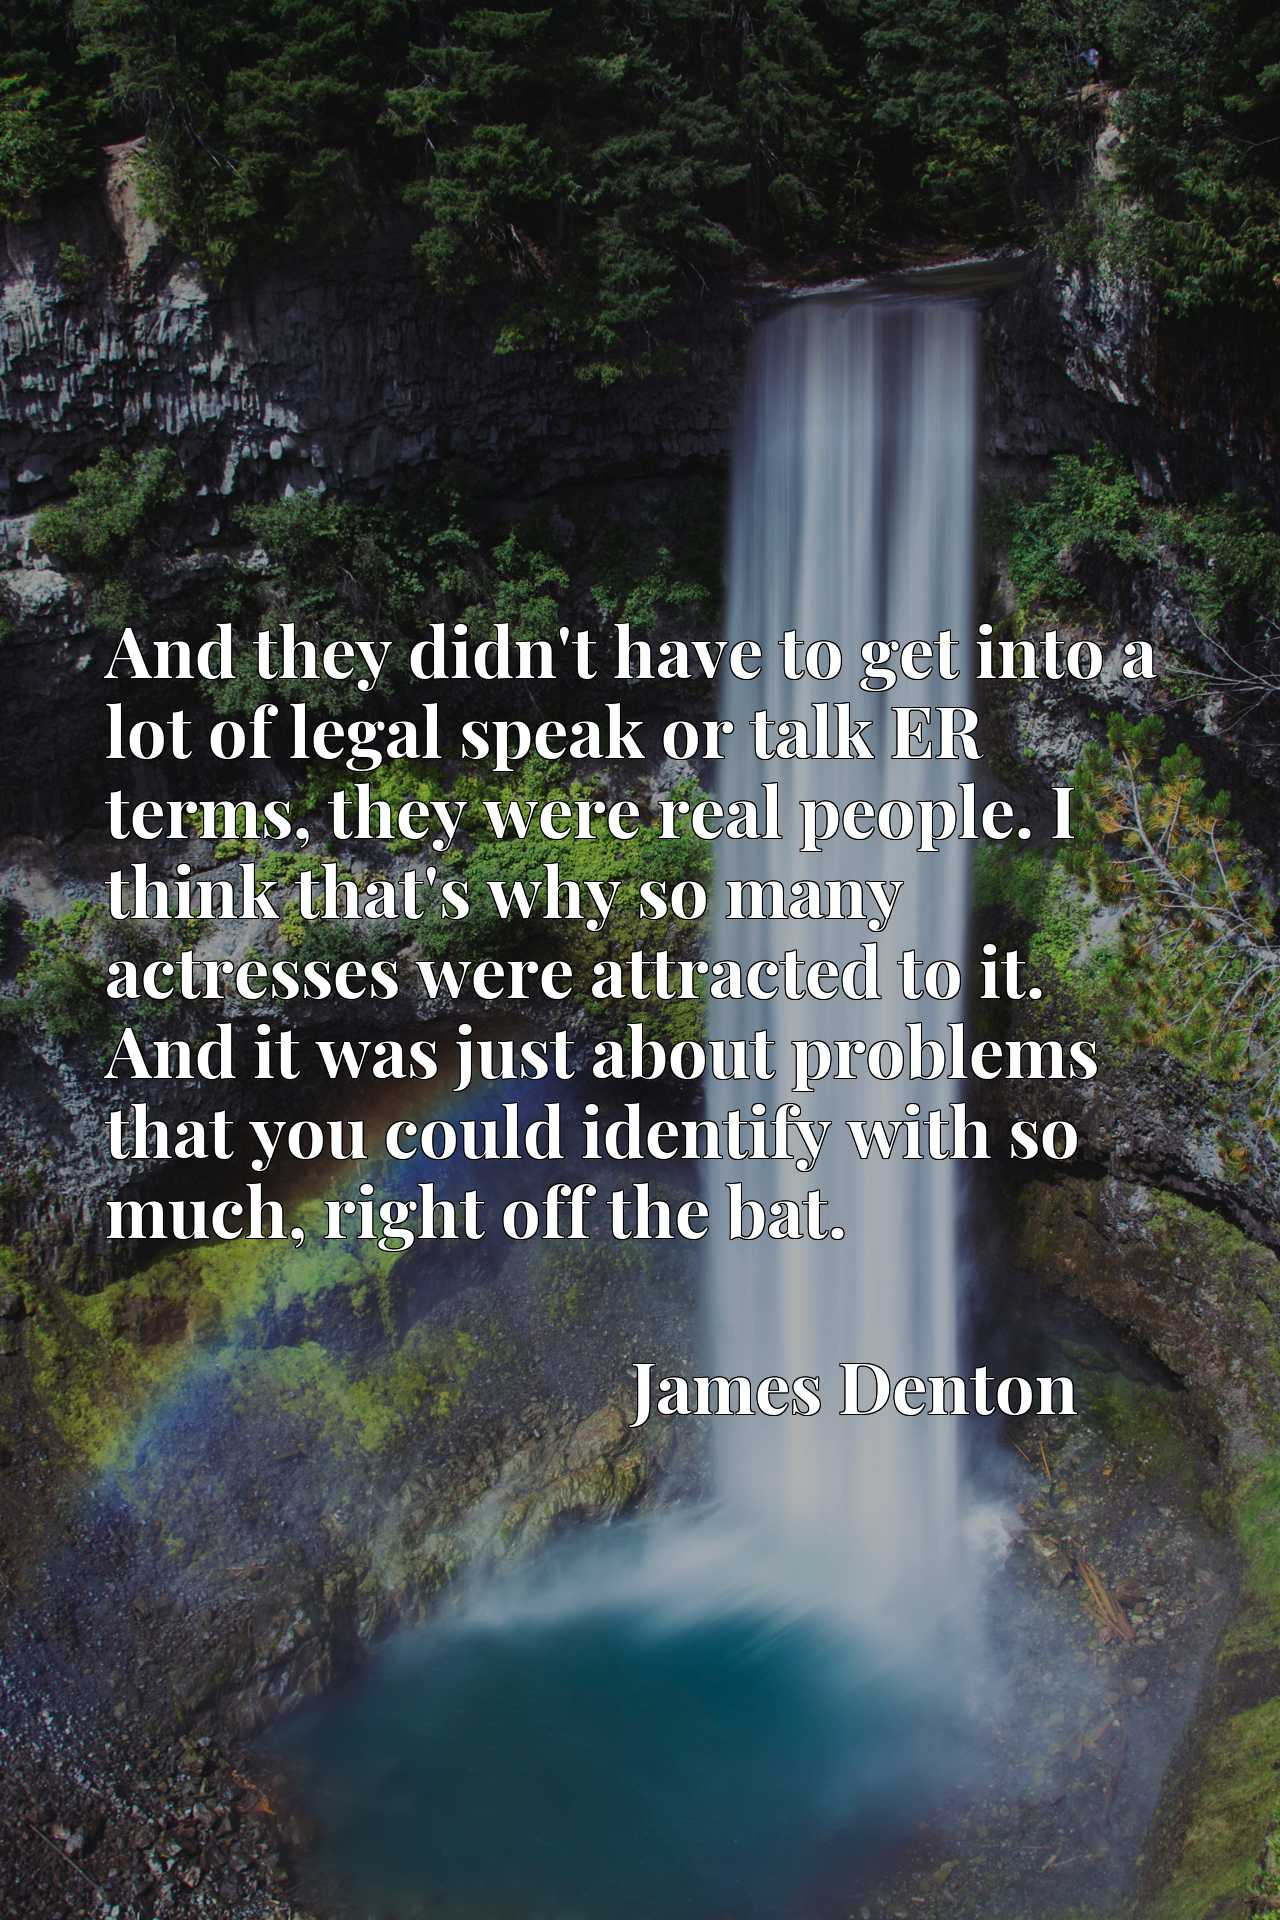 Quote Picture :And they didn't have to get into a lot of legal speak or talk ER terms, they were real people. I think that's why so many actresses were attracted to it. And it was just about problems that you could identify with so much, right off the bat.